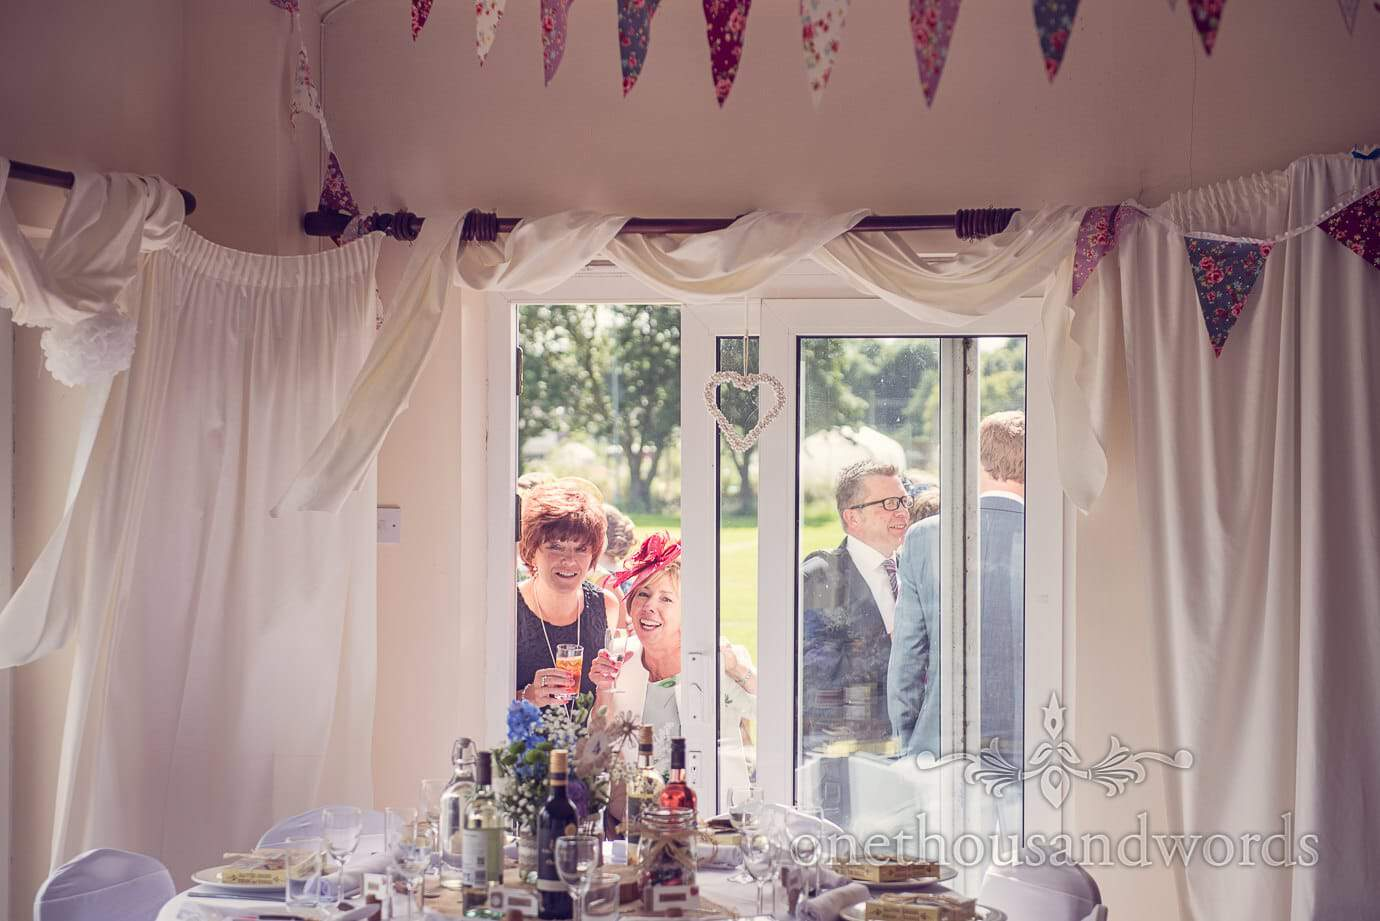 Mother of bride inspects wedding decoration at Wareham Rugby Club wedding